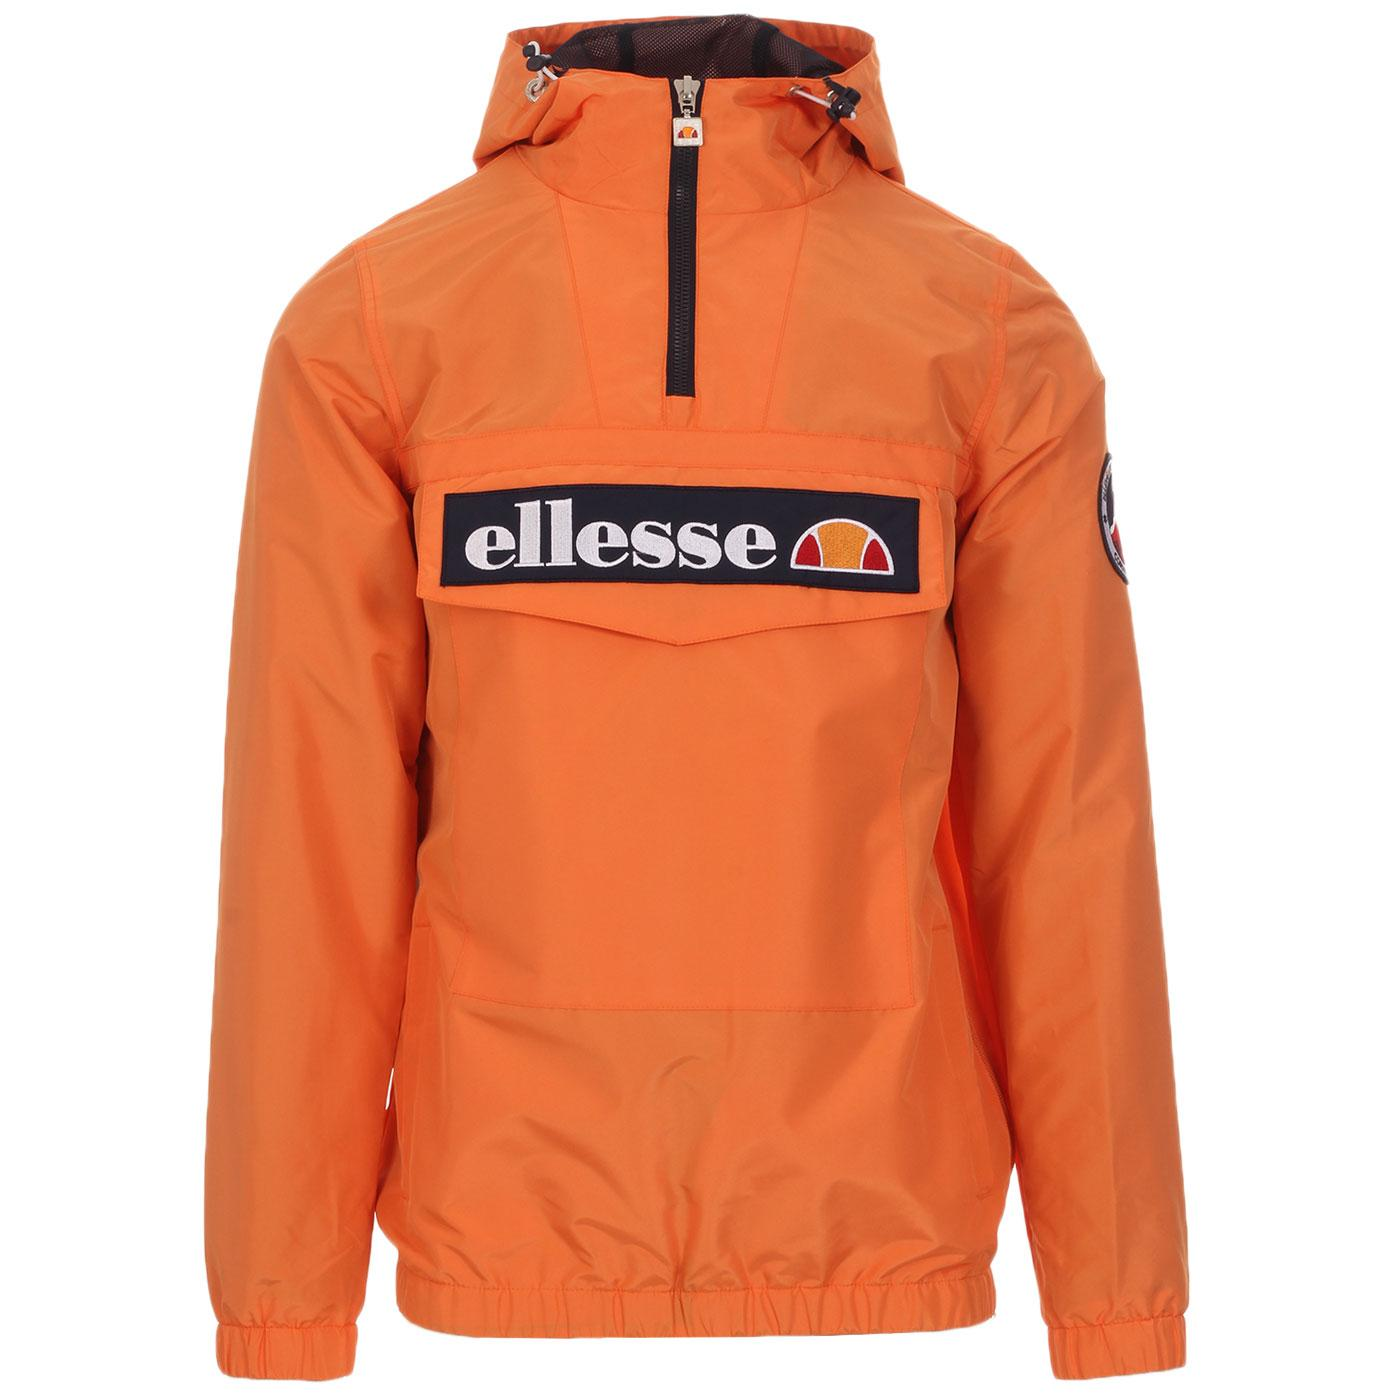 Mont 2 ELLESSE Retro 80s Overhead Jacket (Orange)